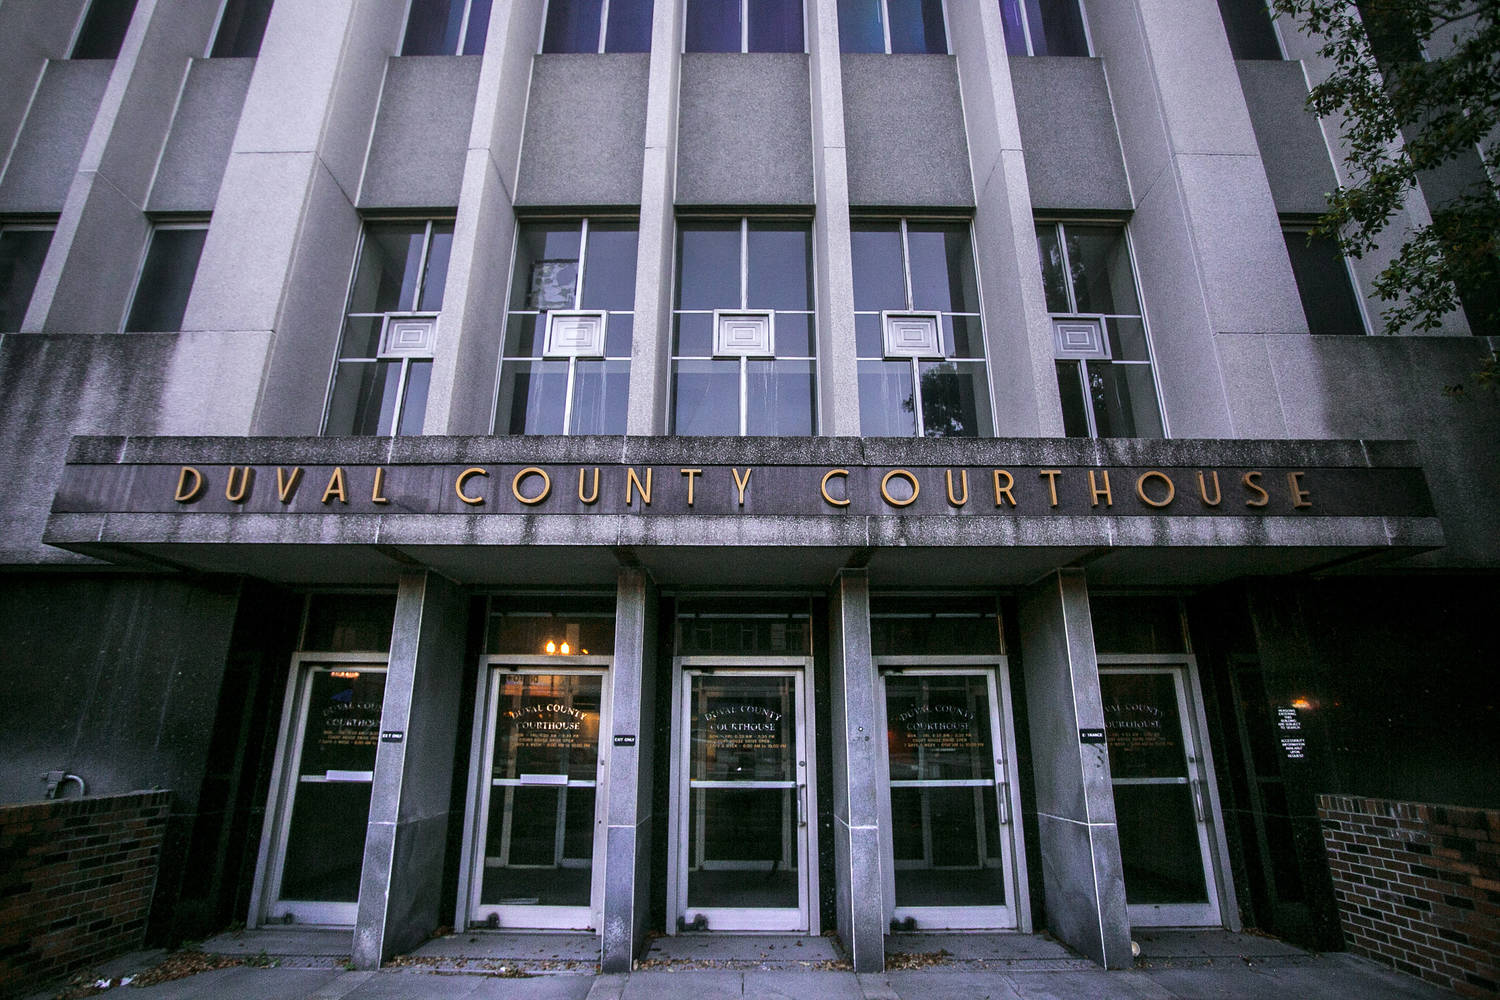 DUVAL COUNTY COURTHOUSE it says in brass-colored letters above the entrance to a grim gray building.